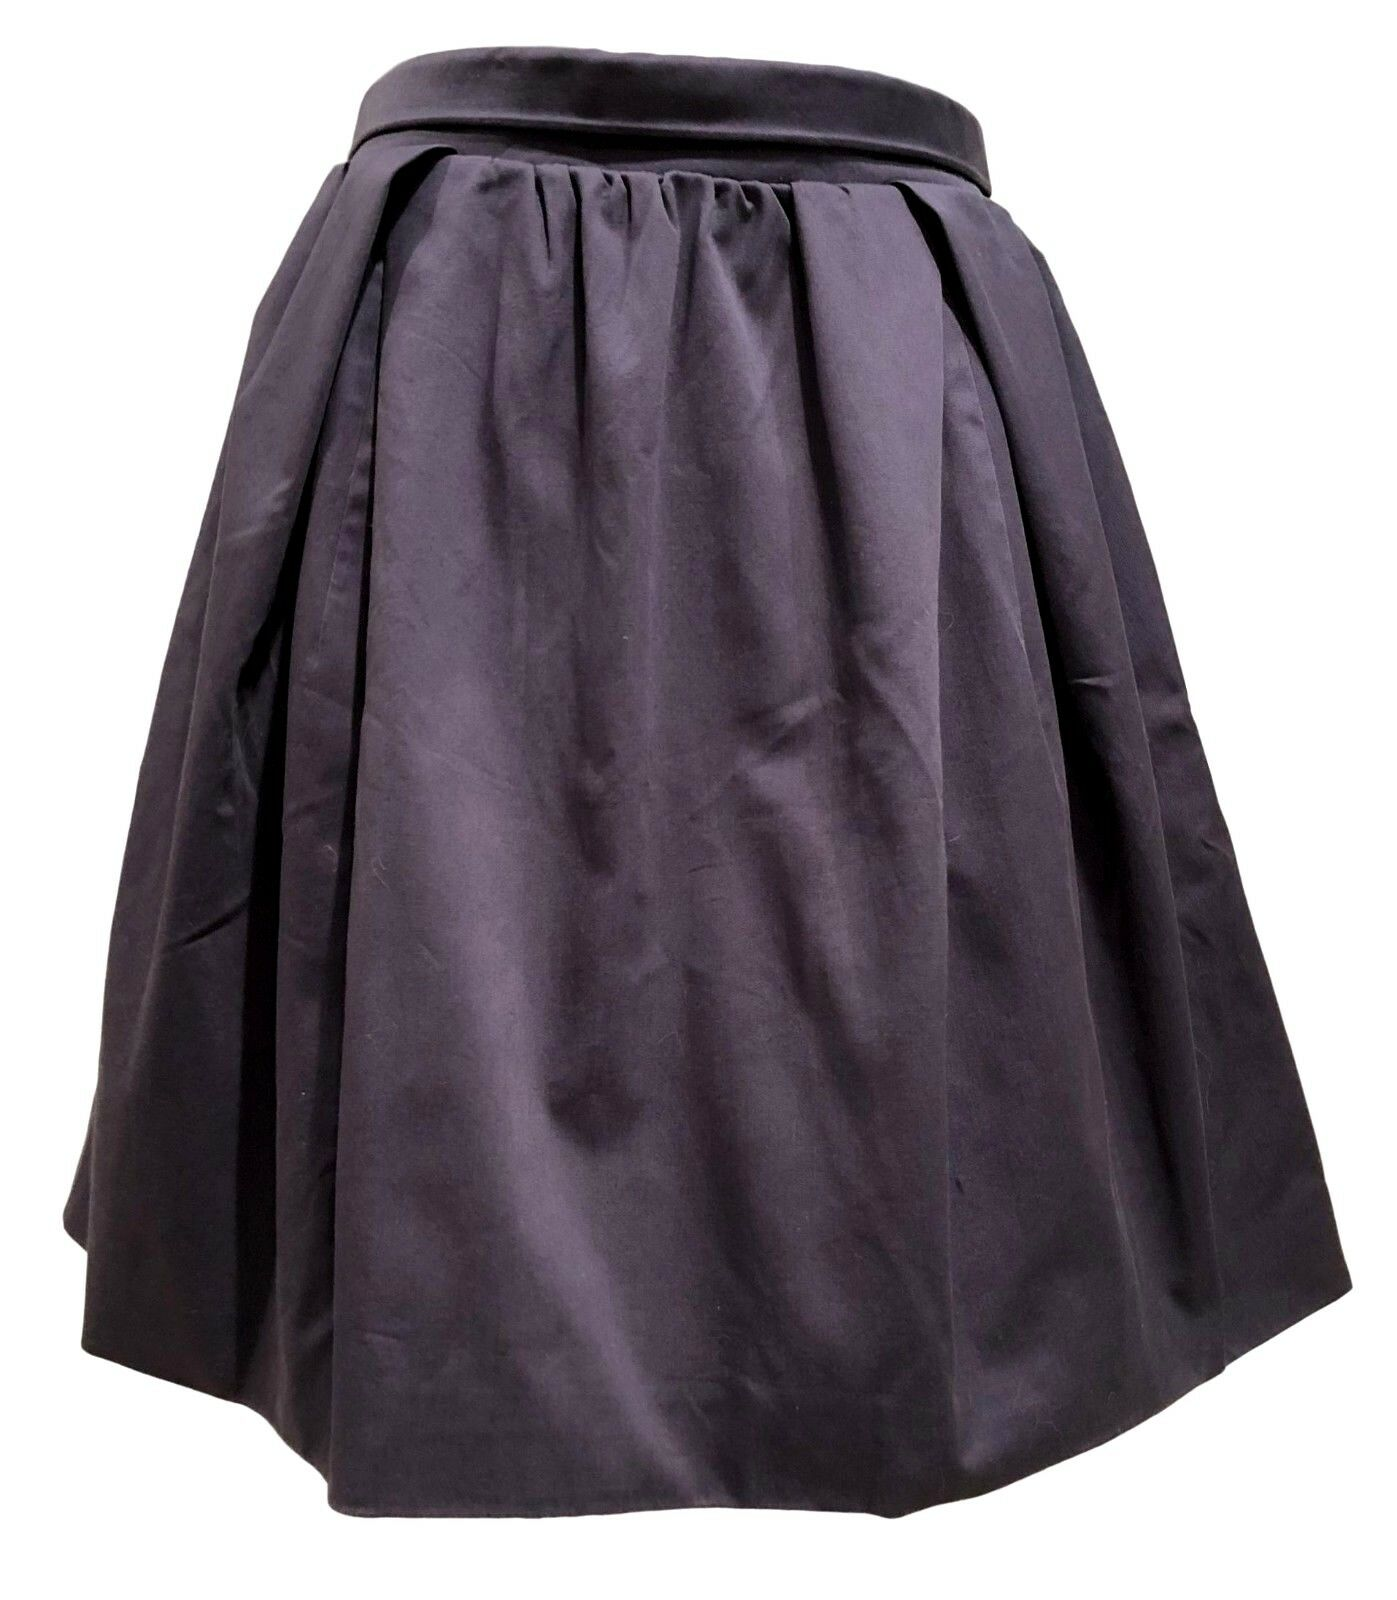 CARVEN COTTON NAVY SKIRT, 38,  645